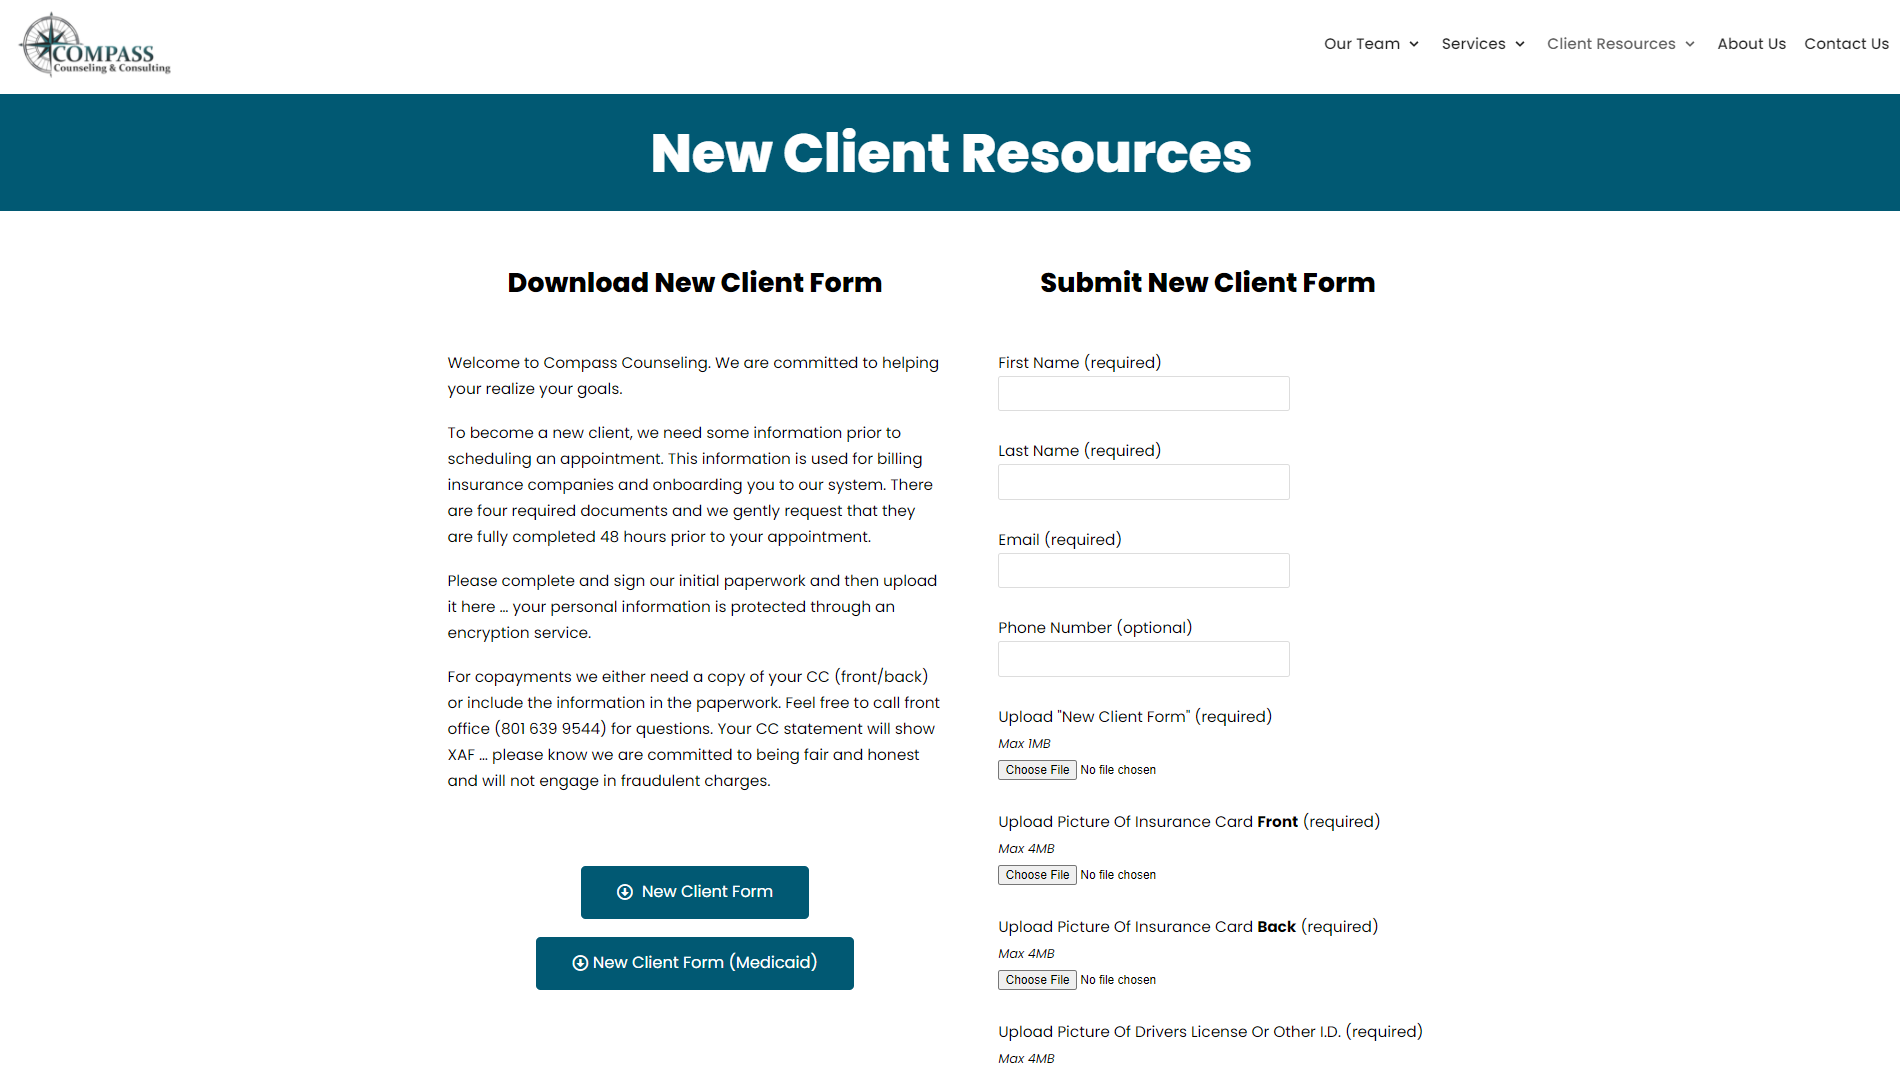 New Client Resources Page Design for Compass Counseling and Consulting